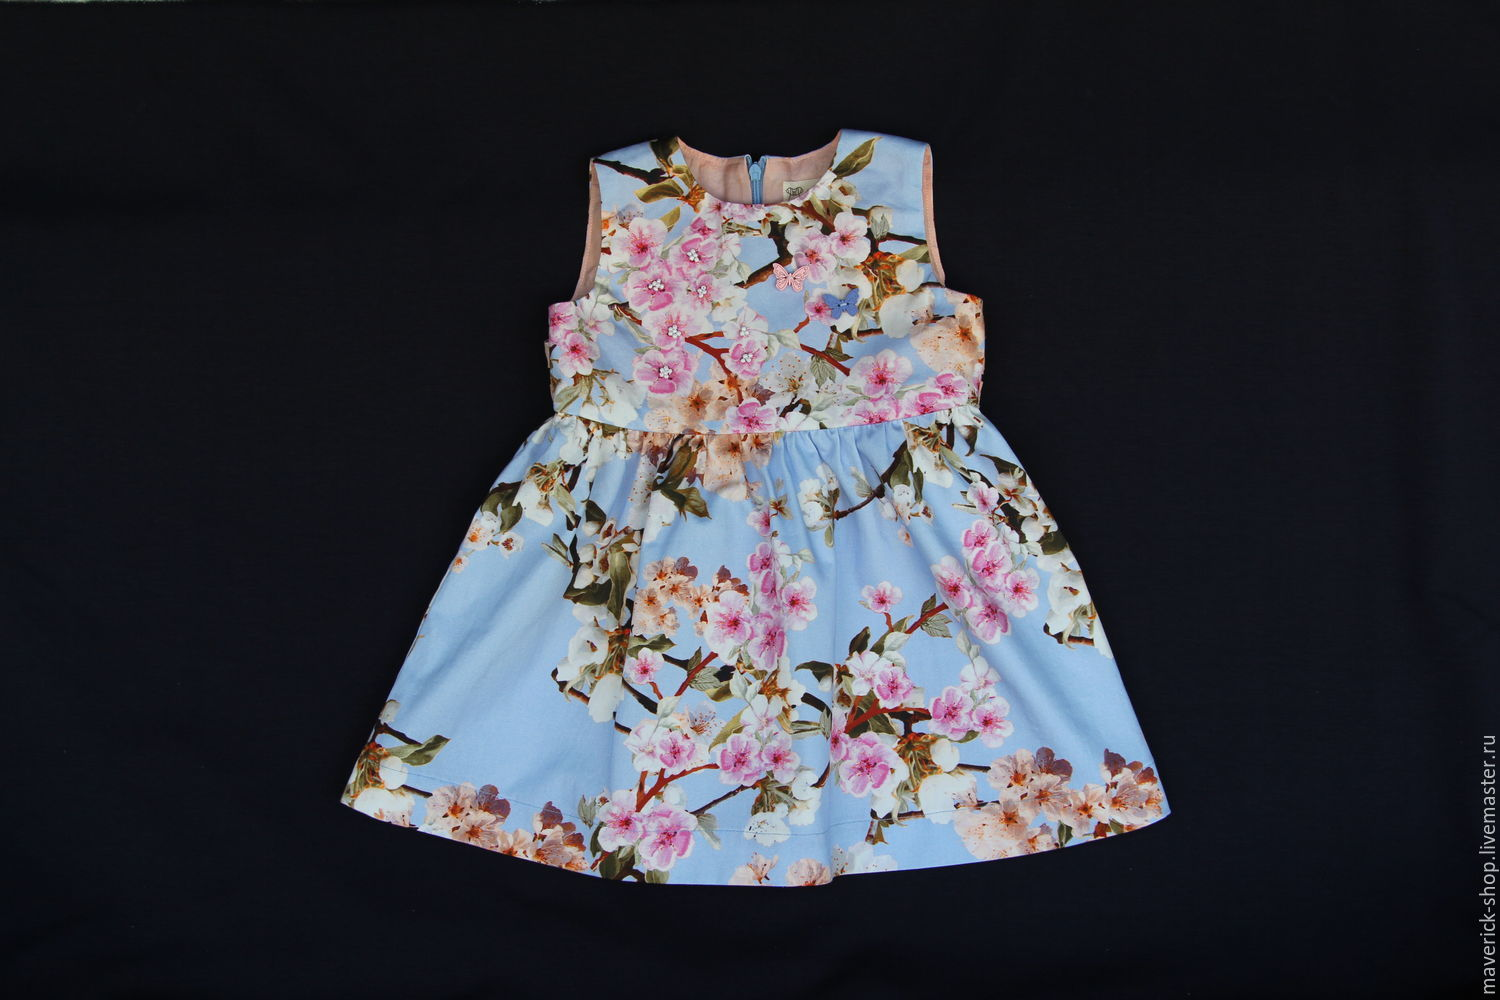 NWT Gymboree DRESSED UP SHOP White Blue Floral Flower Bee Dressy Dress NEW 57810